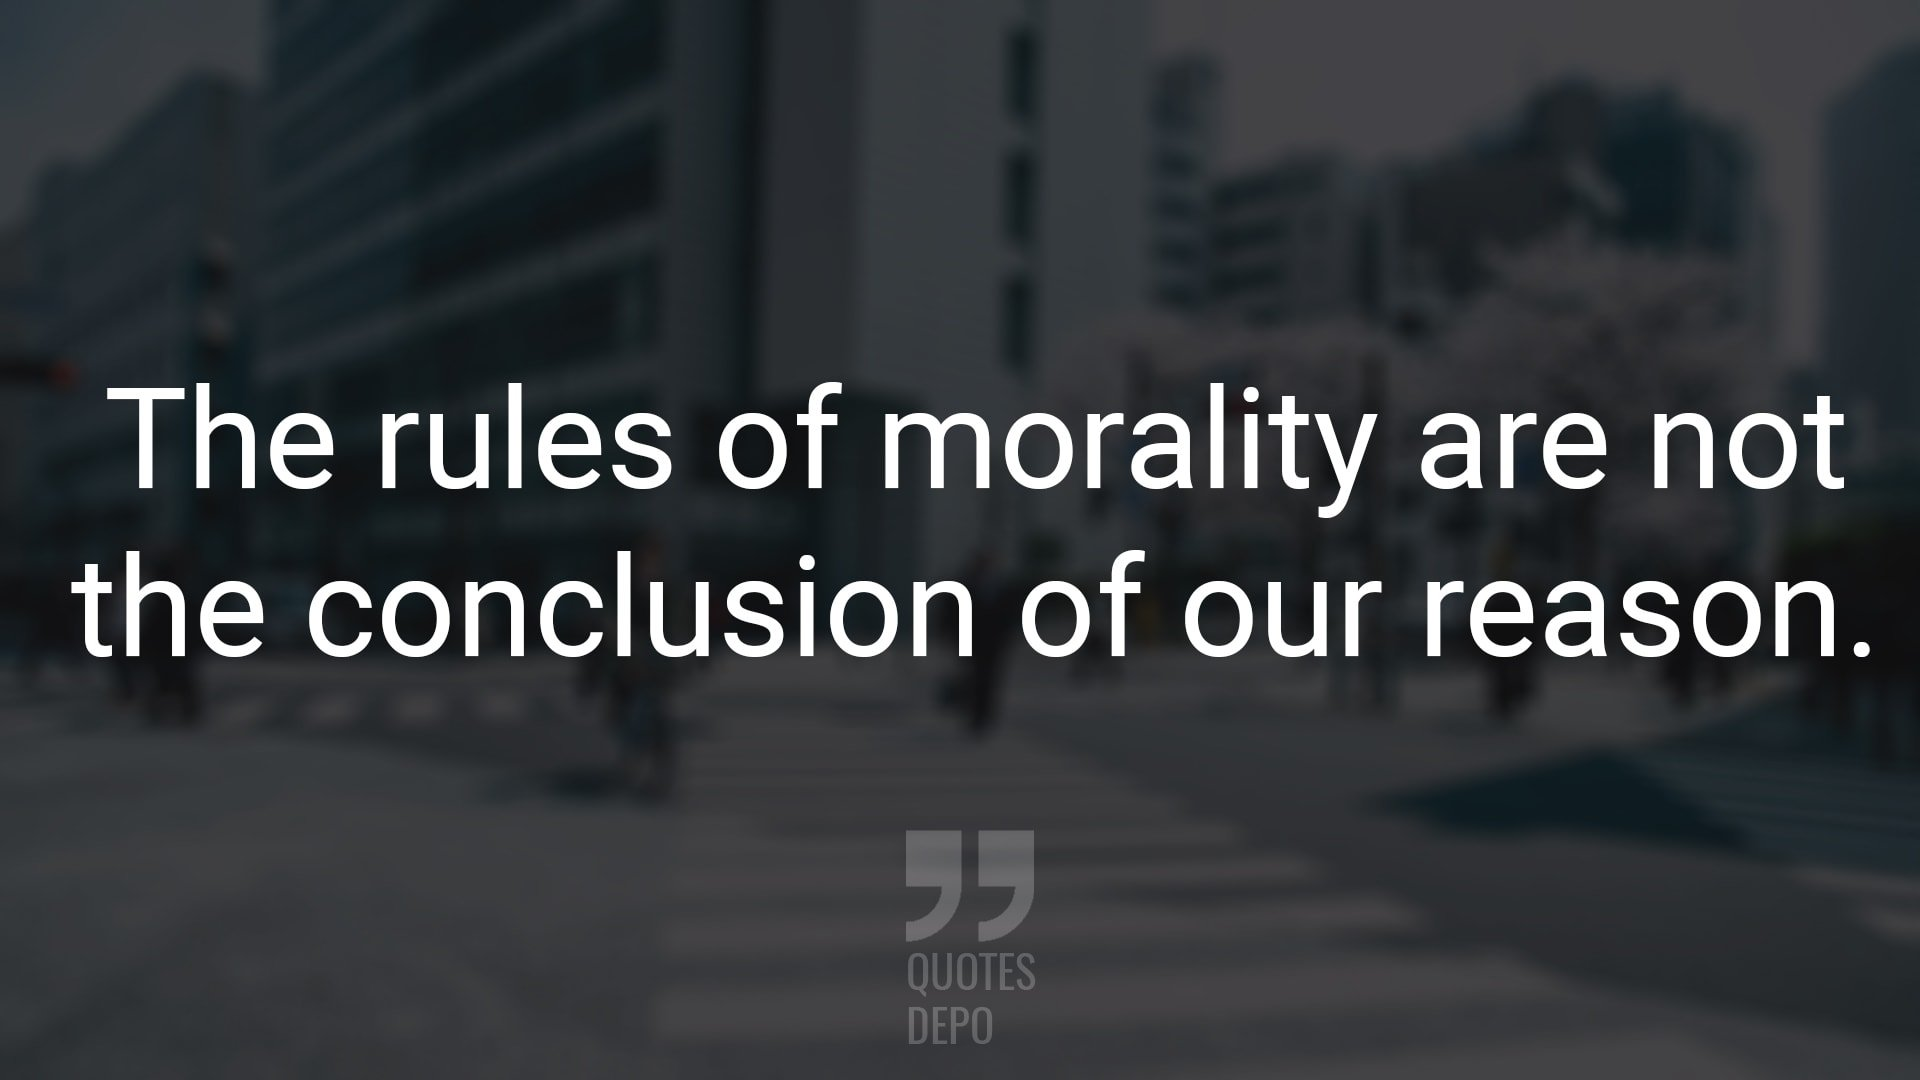 The Rules of Morality